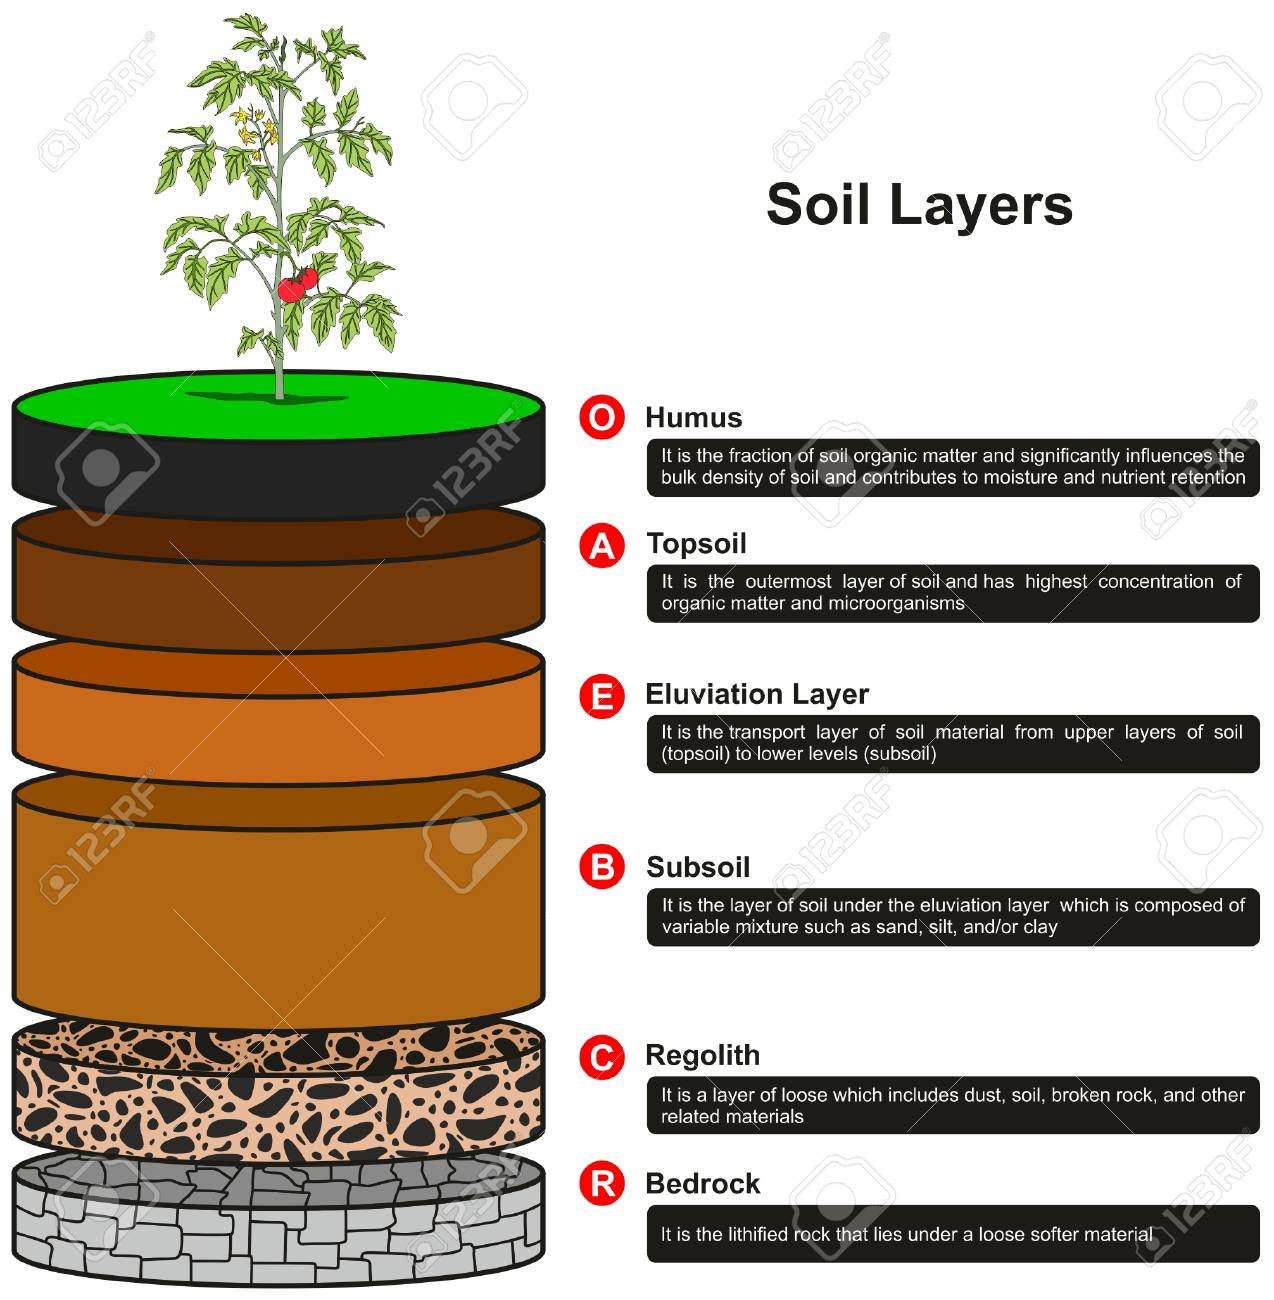 soil layers infographic diagram showing as slices including humus